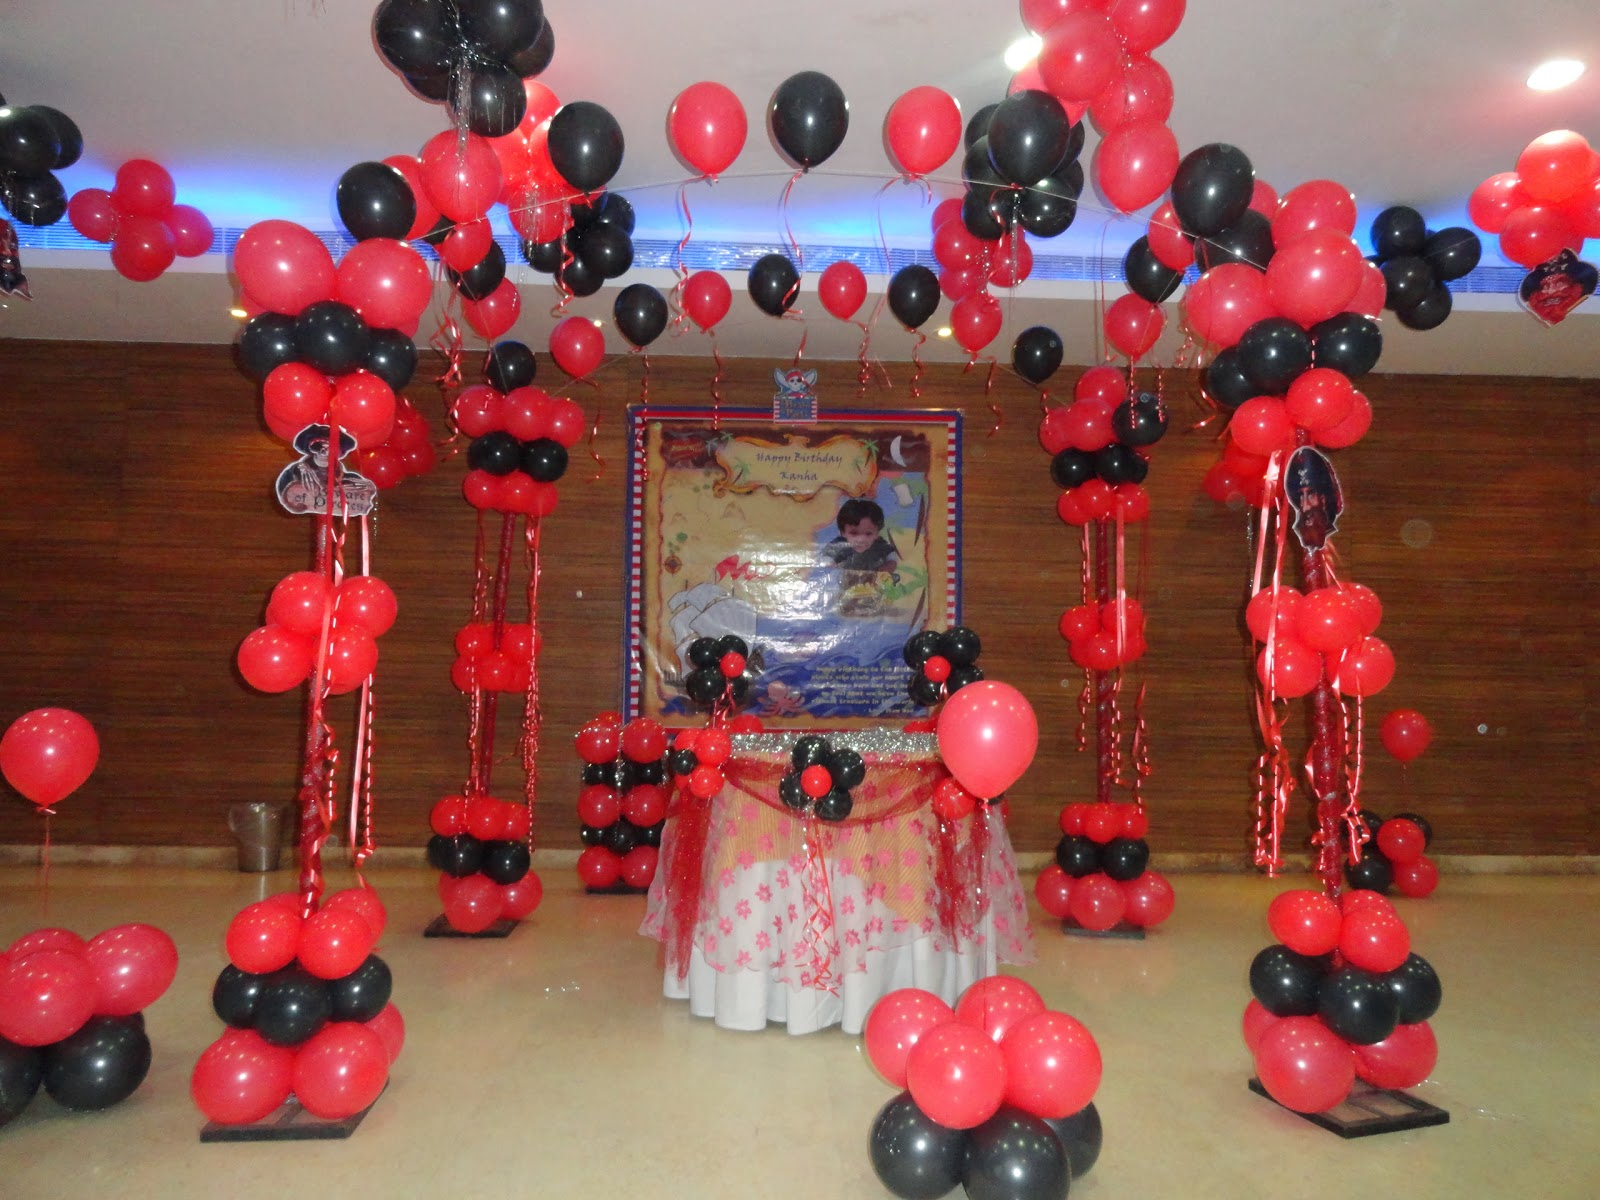 Birthday Decorations Red Image Inspiration of Cake and Birthday